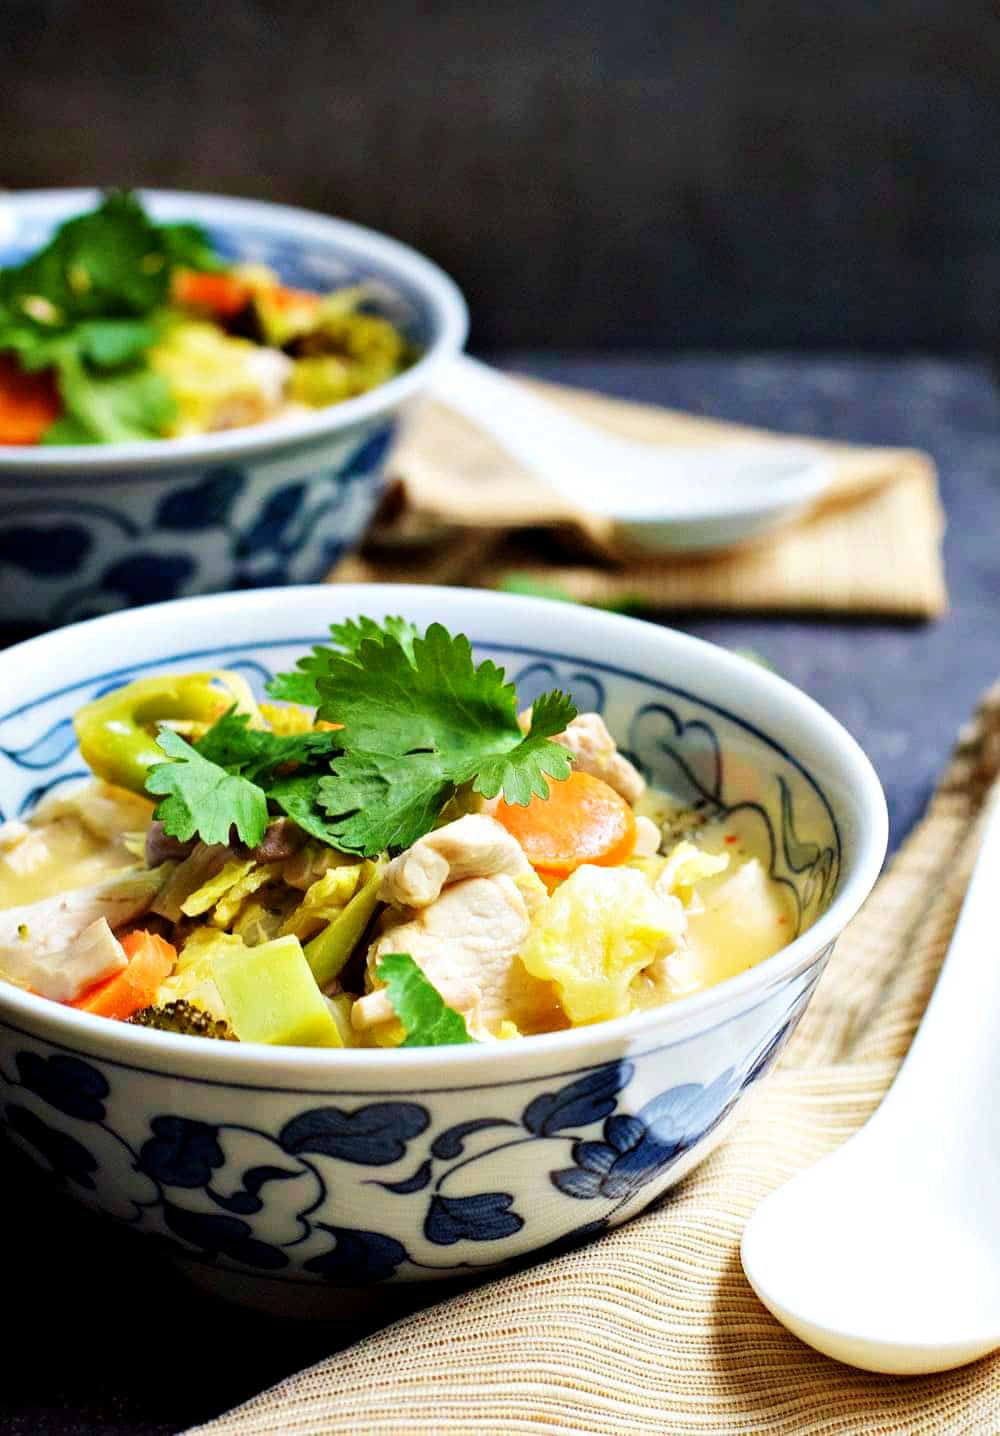 Tom-Kha-Gai-Thai-Coconut-Chicken-Soup served in blue and white bowls